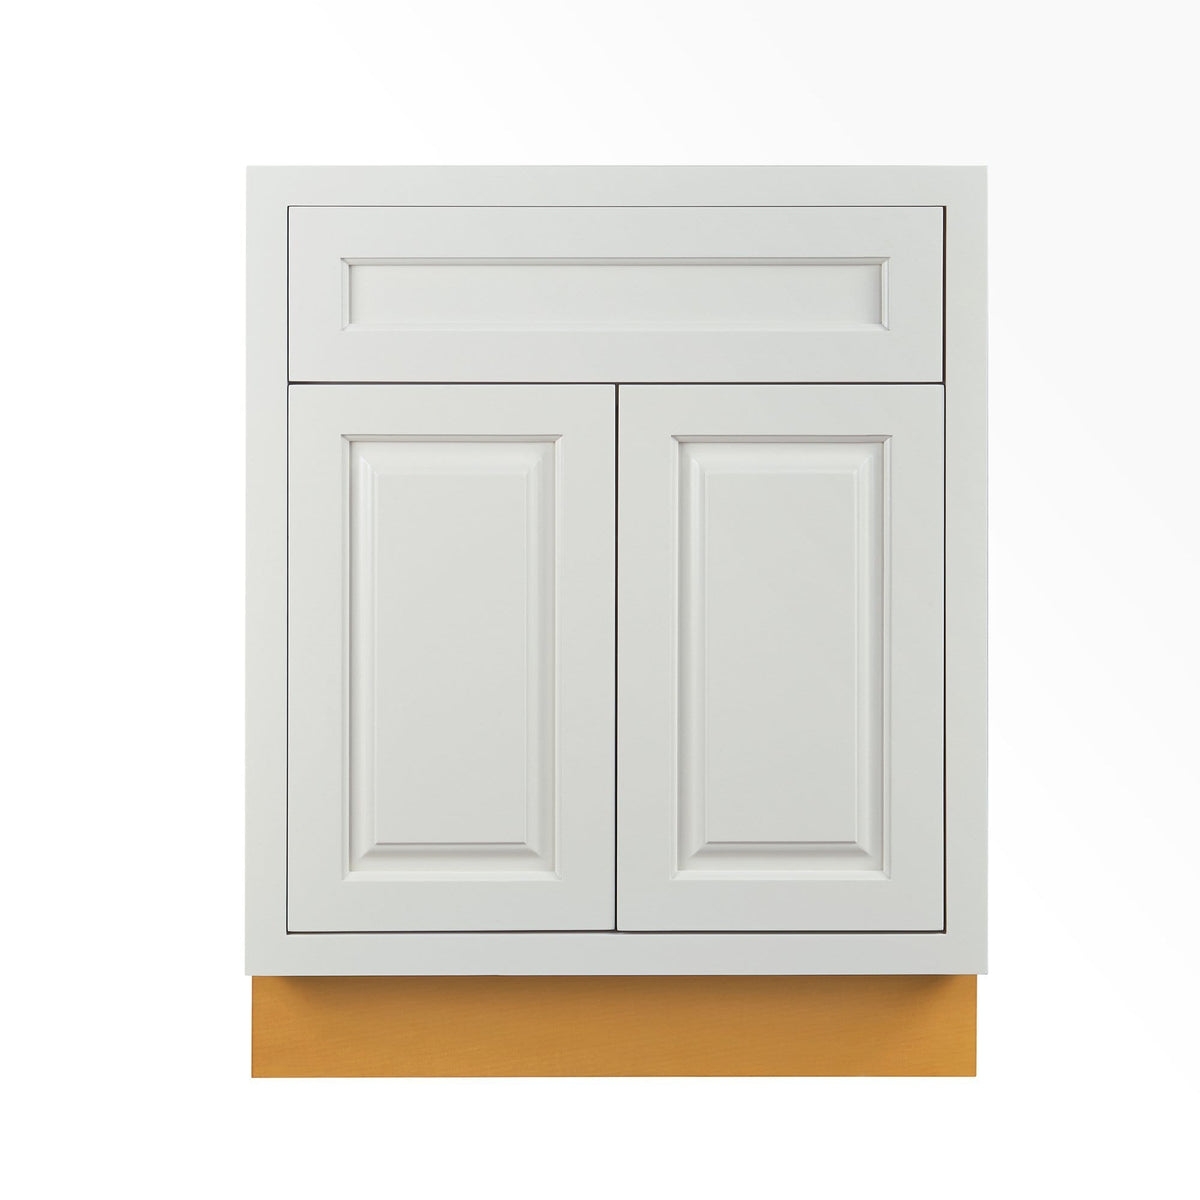 "Base Cabinet Vintage White Inset Raised Panel Base Cabinet - Double Door 24""-27"" Wide D5B24 Inset Kitchen Cabinets"